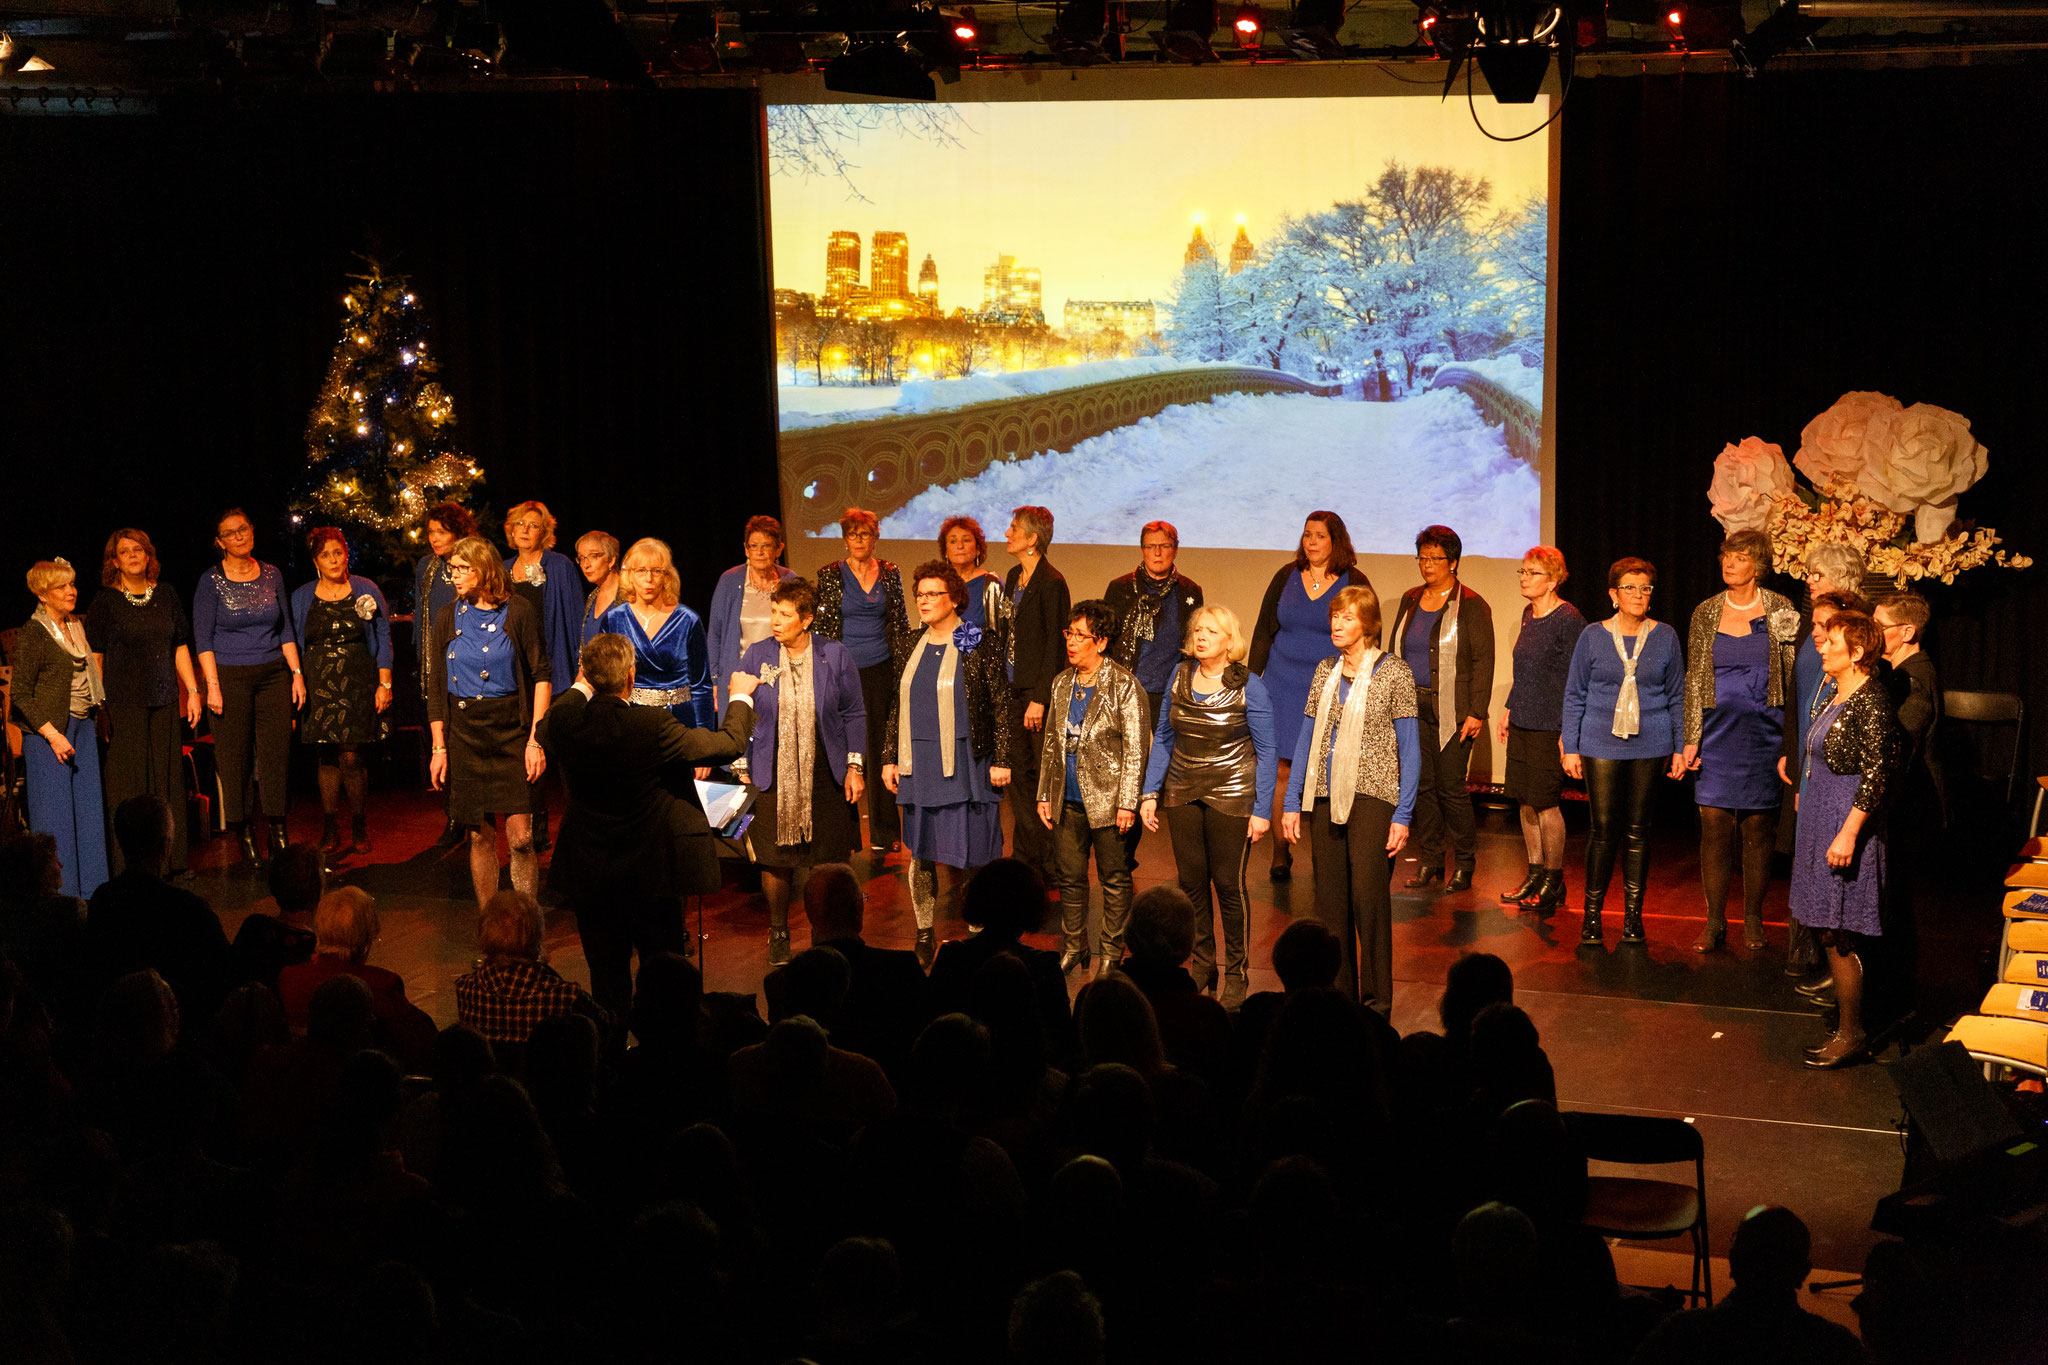 Kerstconcert OtherWise ChristmasWise WorldWide, Culemborg, 23 december 2018